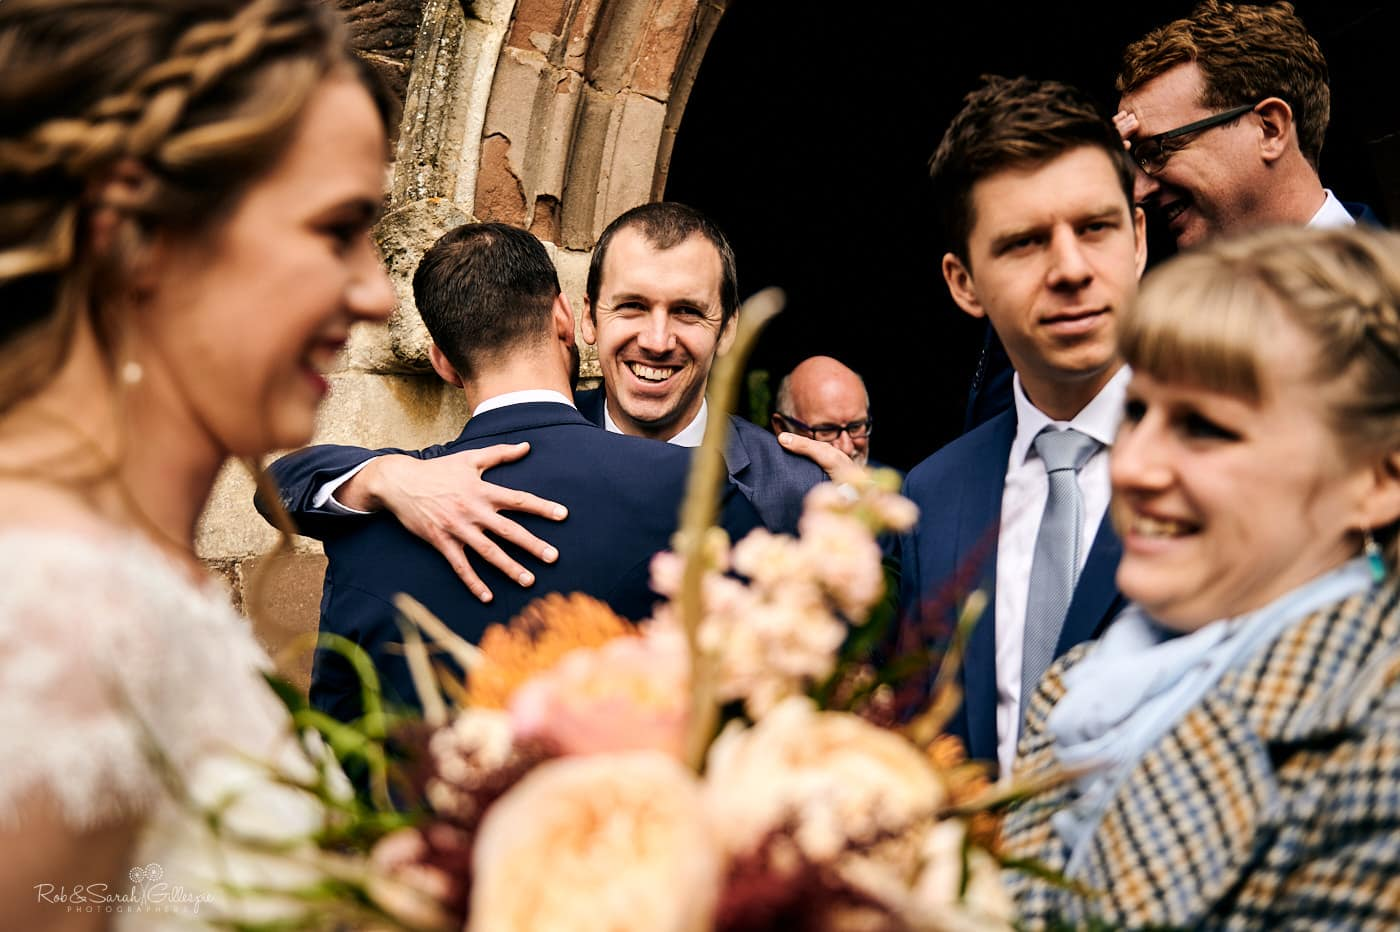 Wedding guests congratulate bride and groom after church wedding